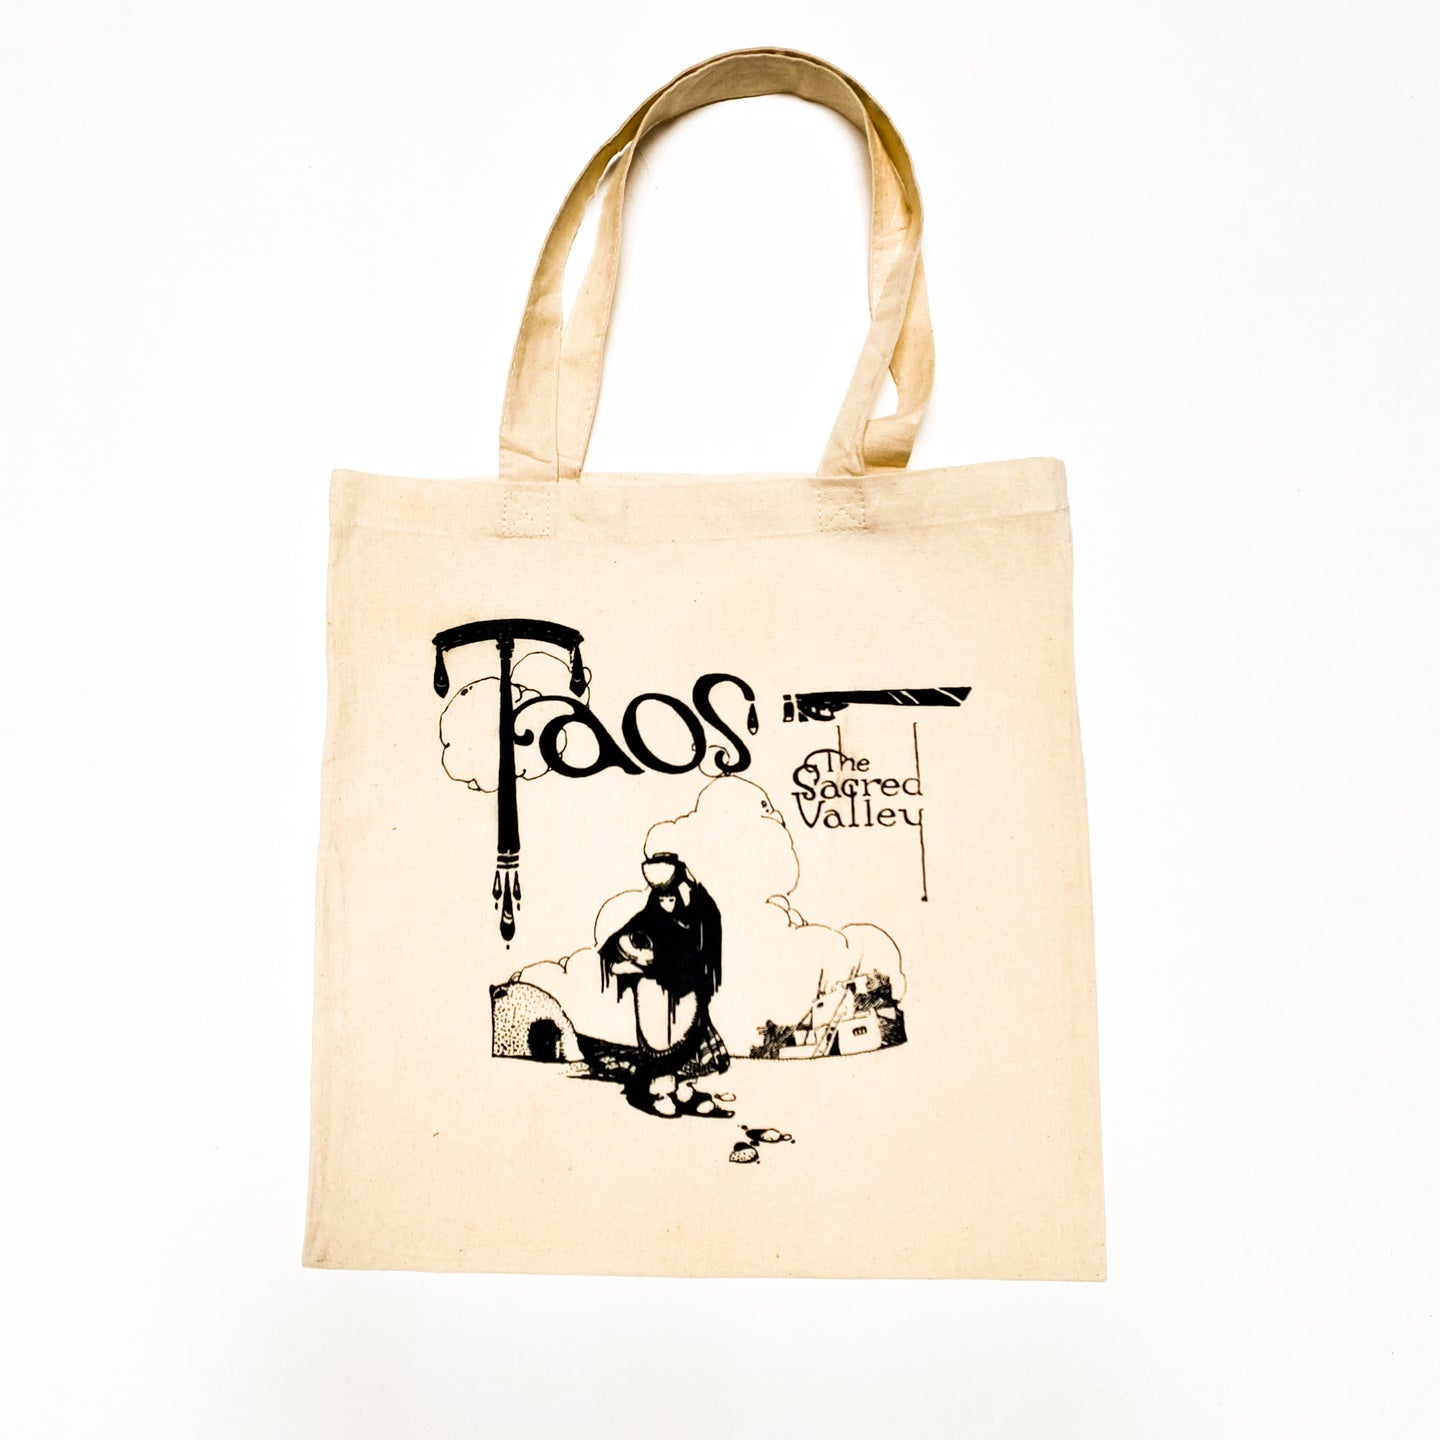 Couse-Sharp X POV Limited Edition Taos Sacred Valley Tote Bag